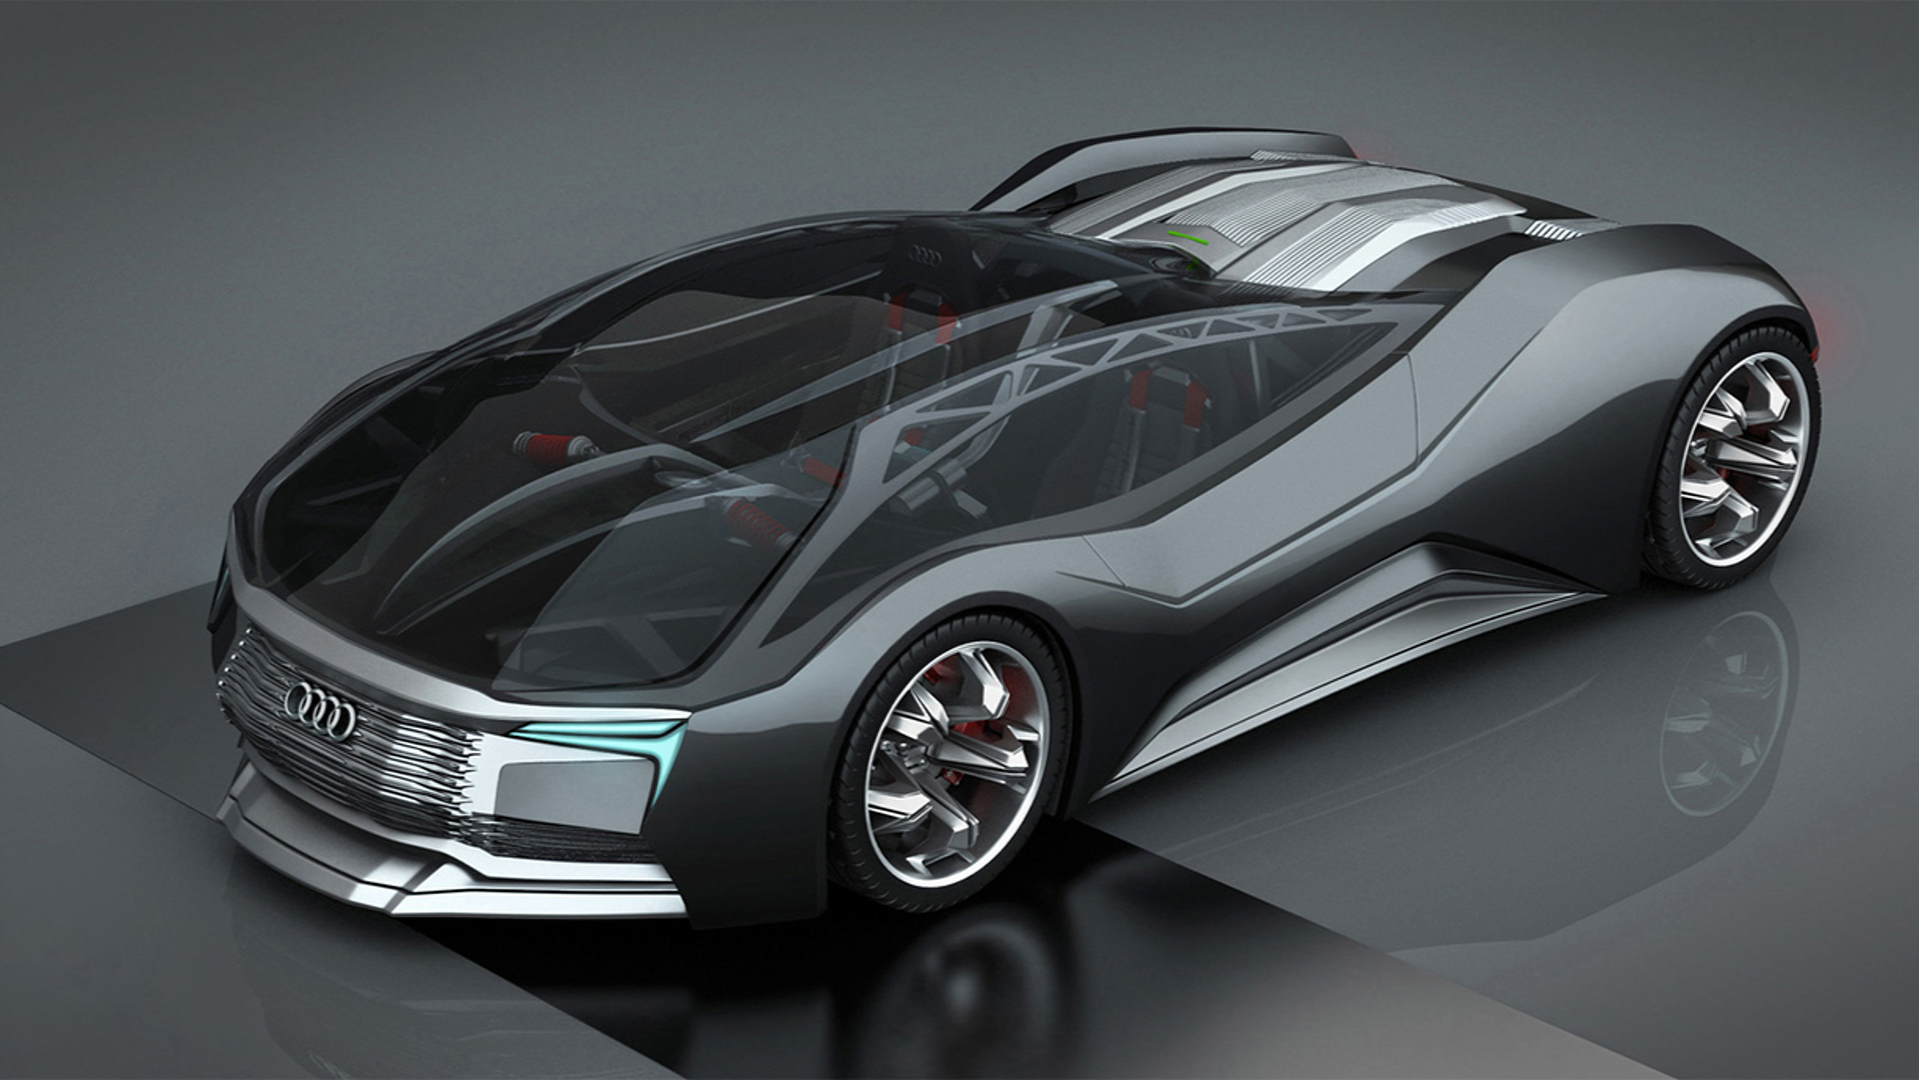 Audi Inspired F-Tron Design Concept Is A Nuclear-powered